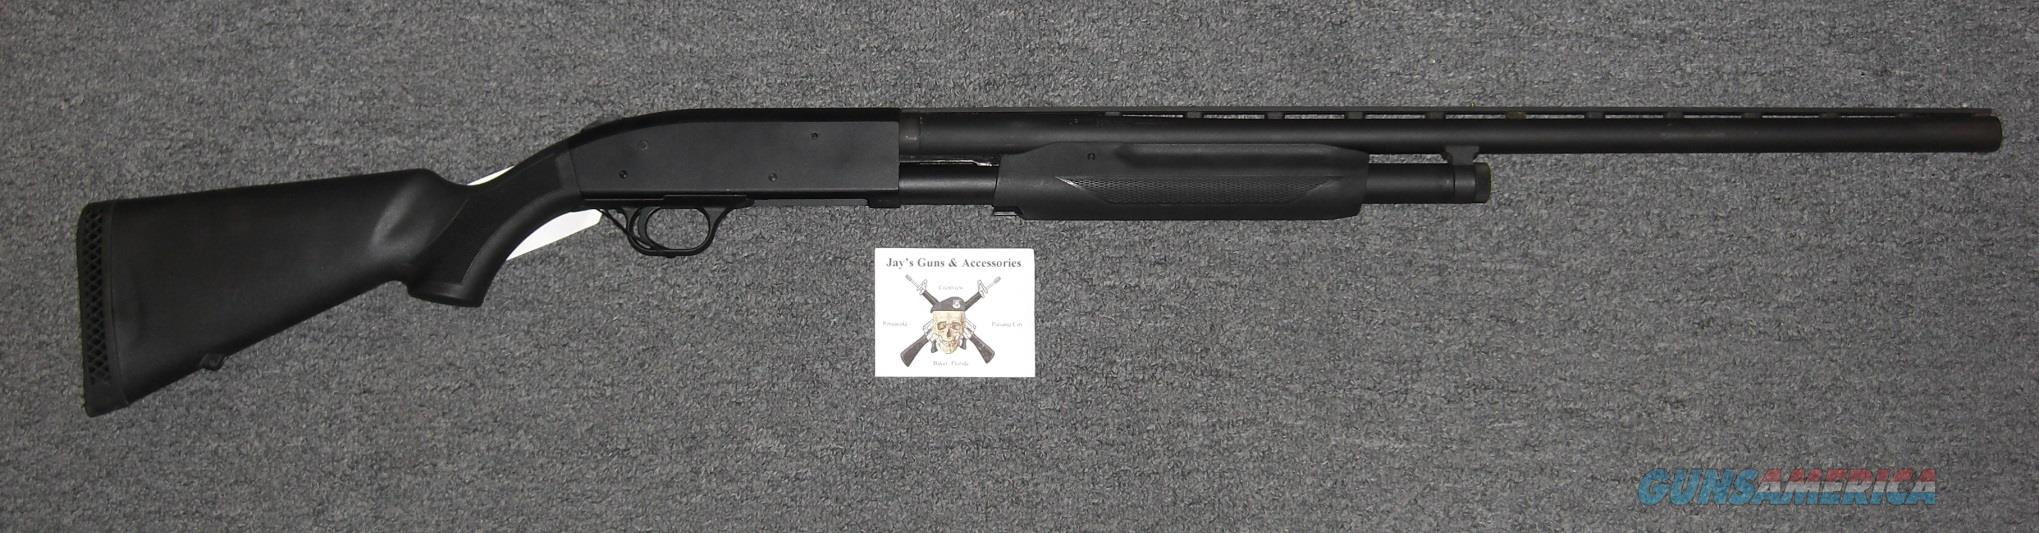 Mossberg 500 (85006) (Left Handed)  Guns > Shotguns > Mossberg Shotguns > Pump > Sporting